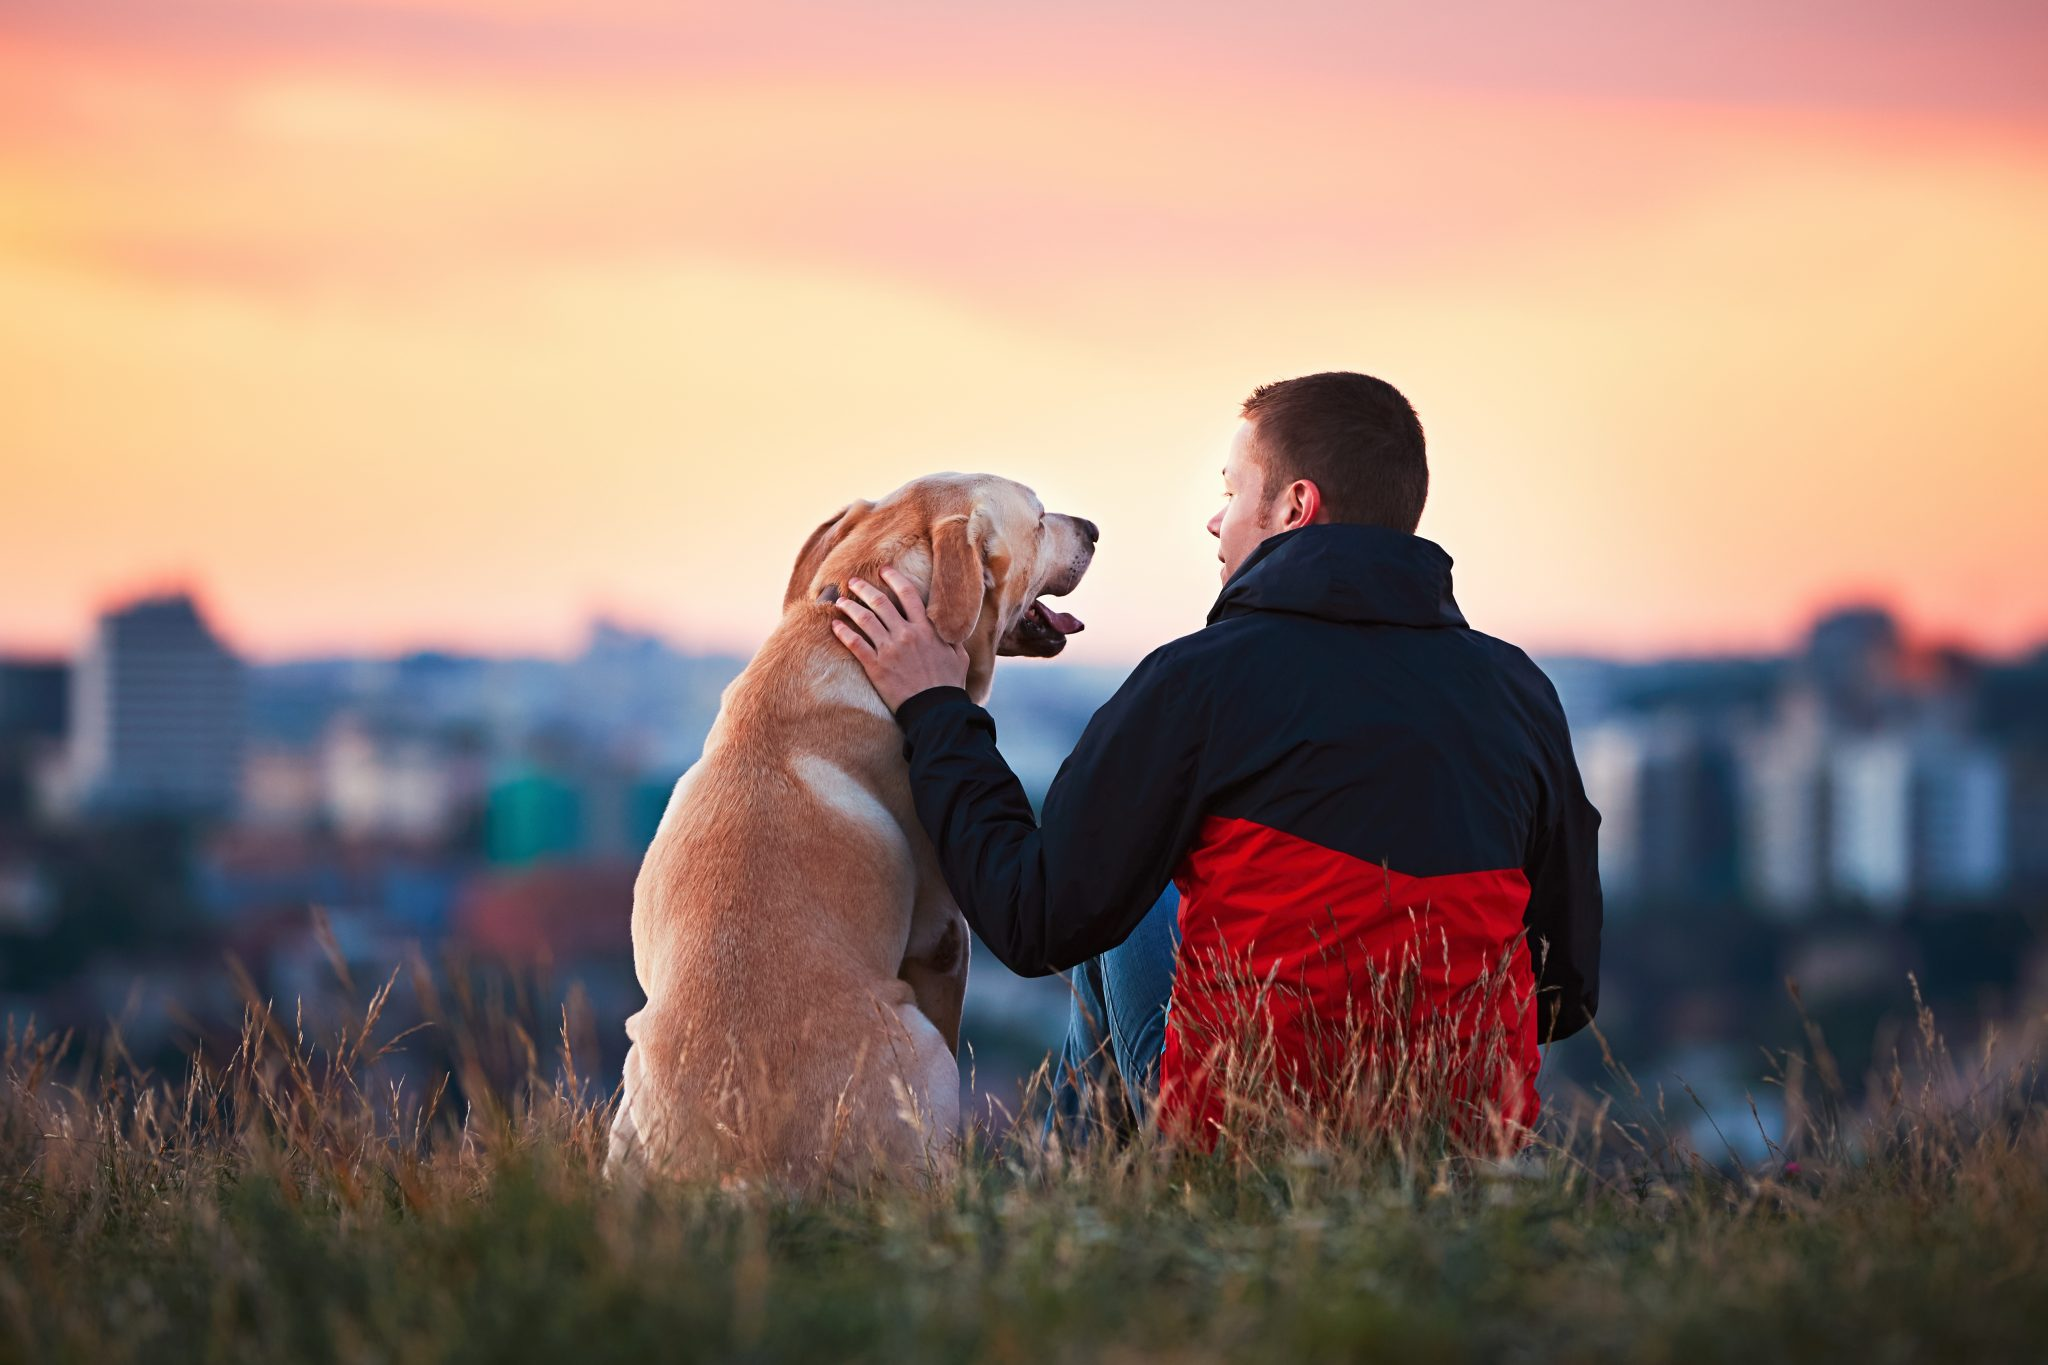 Man sitting on a hill with yellow labrador, learning to trust the process.